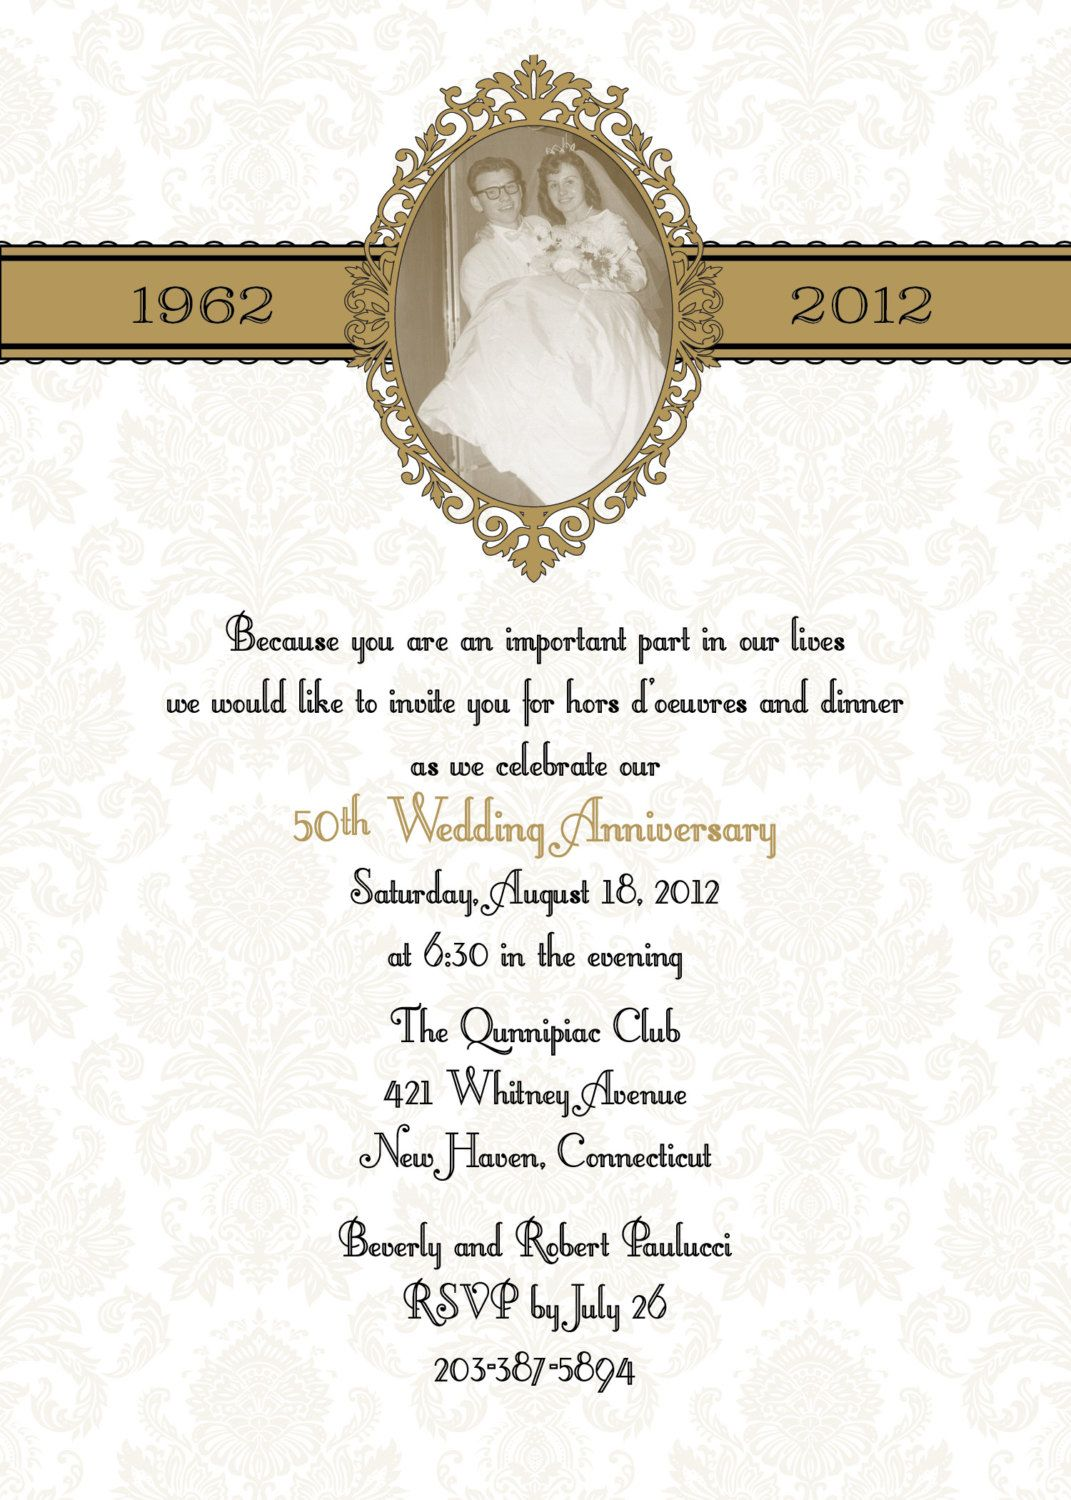 17 Best images about 60th ANNIVERSARY INVITATION IDEAS on – Wording for 50th Wedding Anniversary Invitations